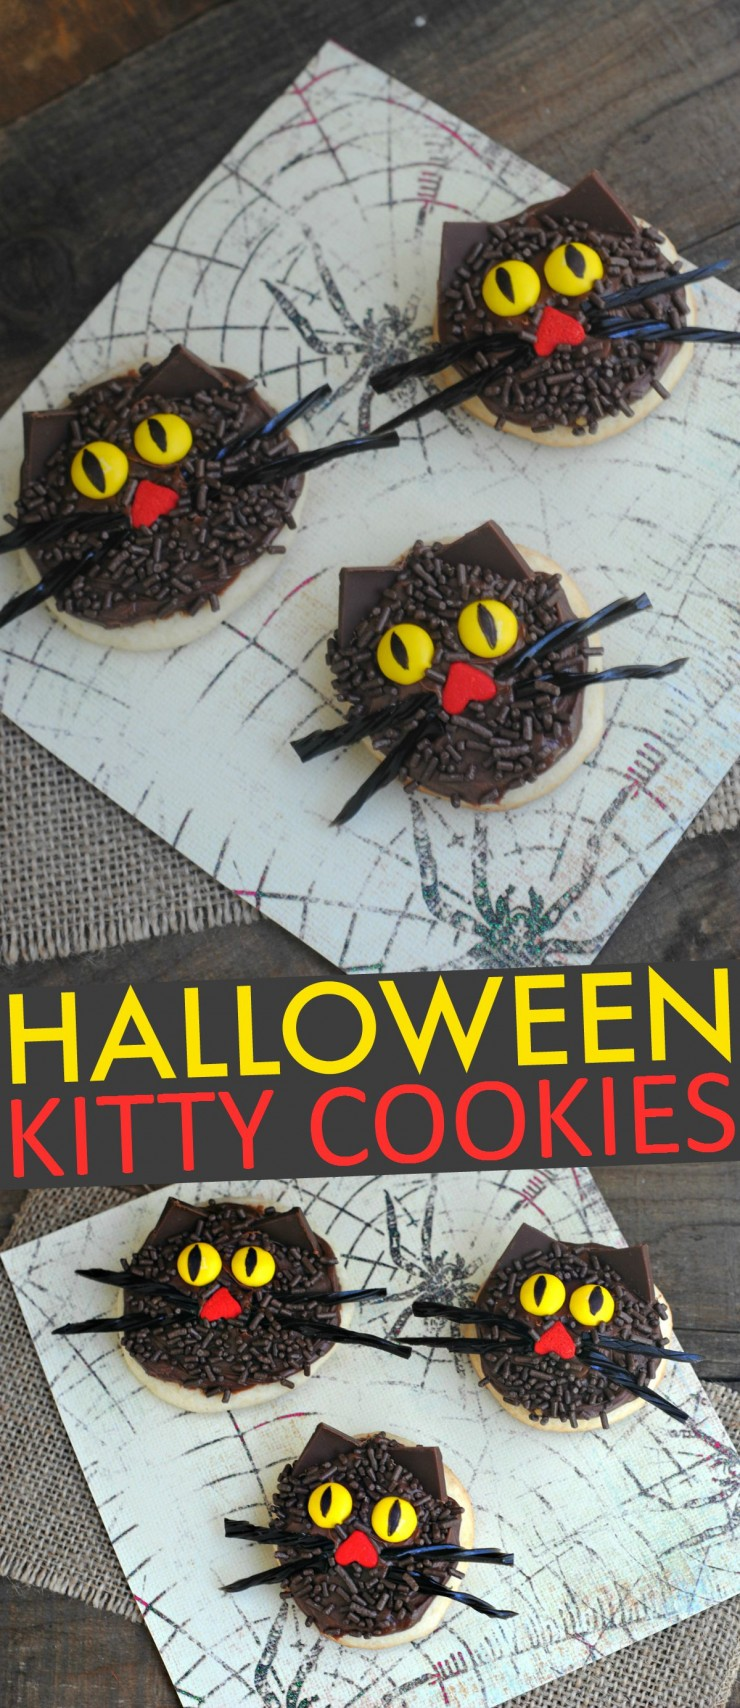 These Halloween Kitty Cookies are a Spooky feline treat perfect for kids Halloween parties!